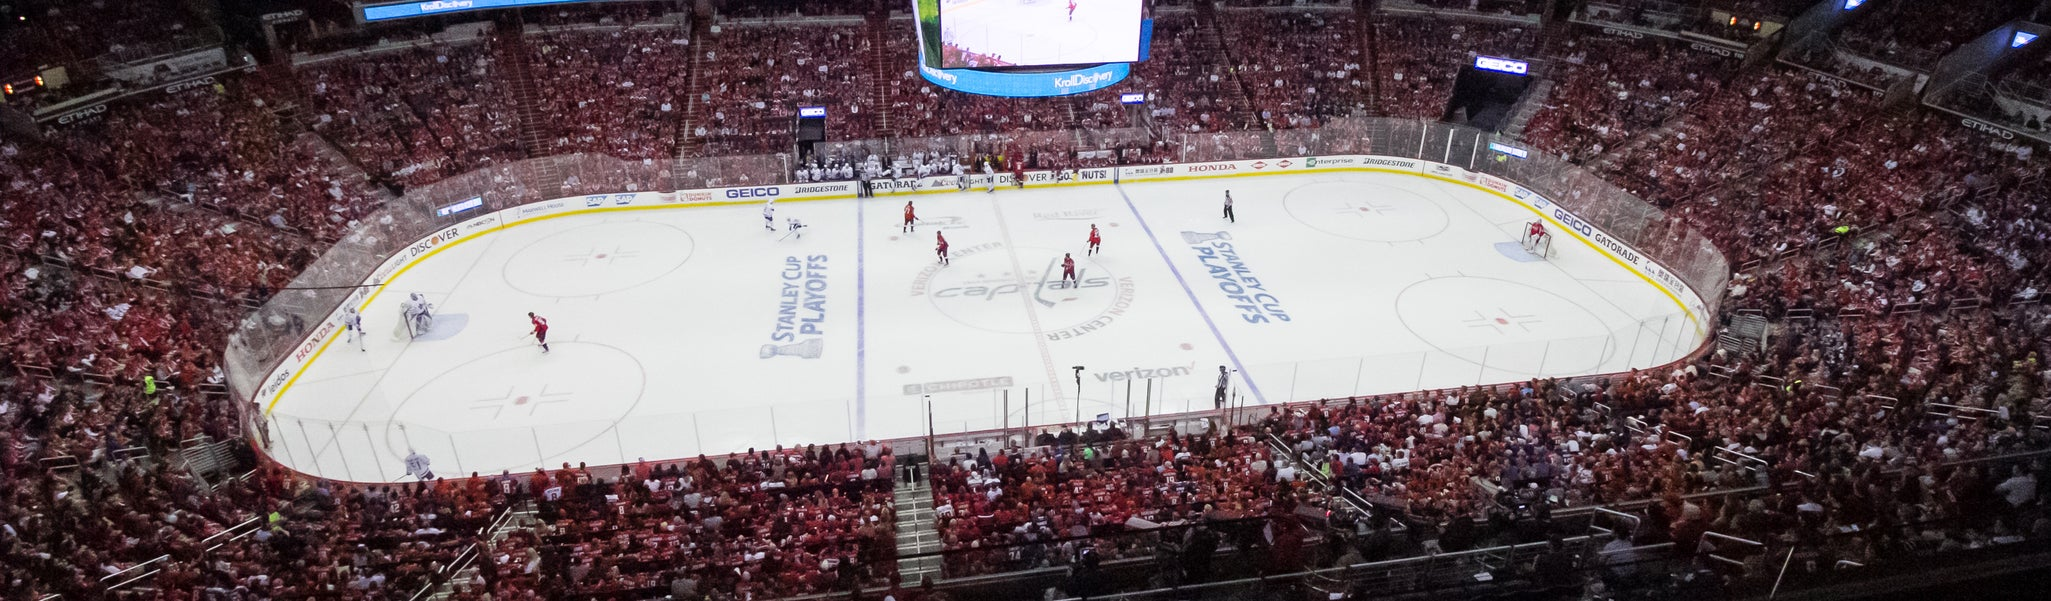 Seat view from Mezzanine Center